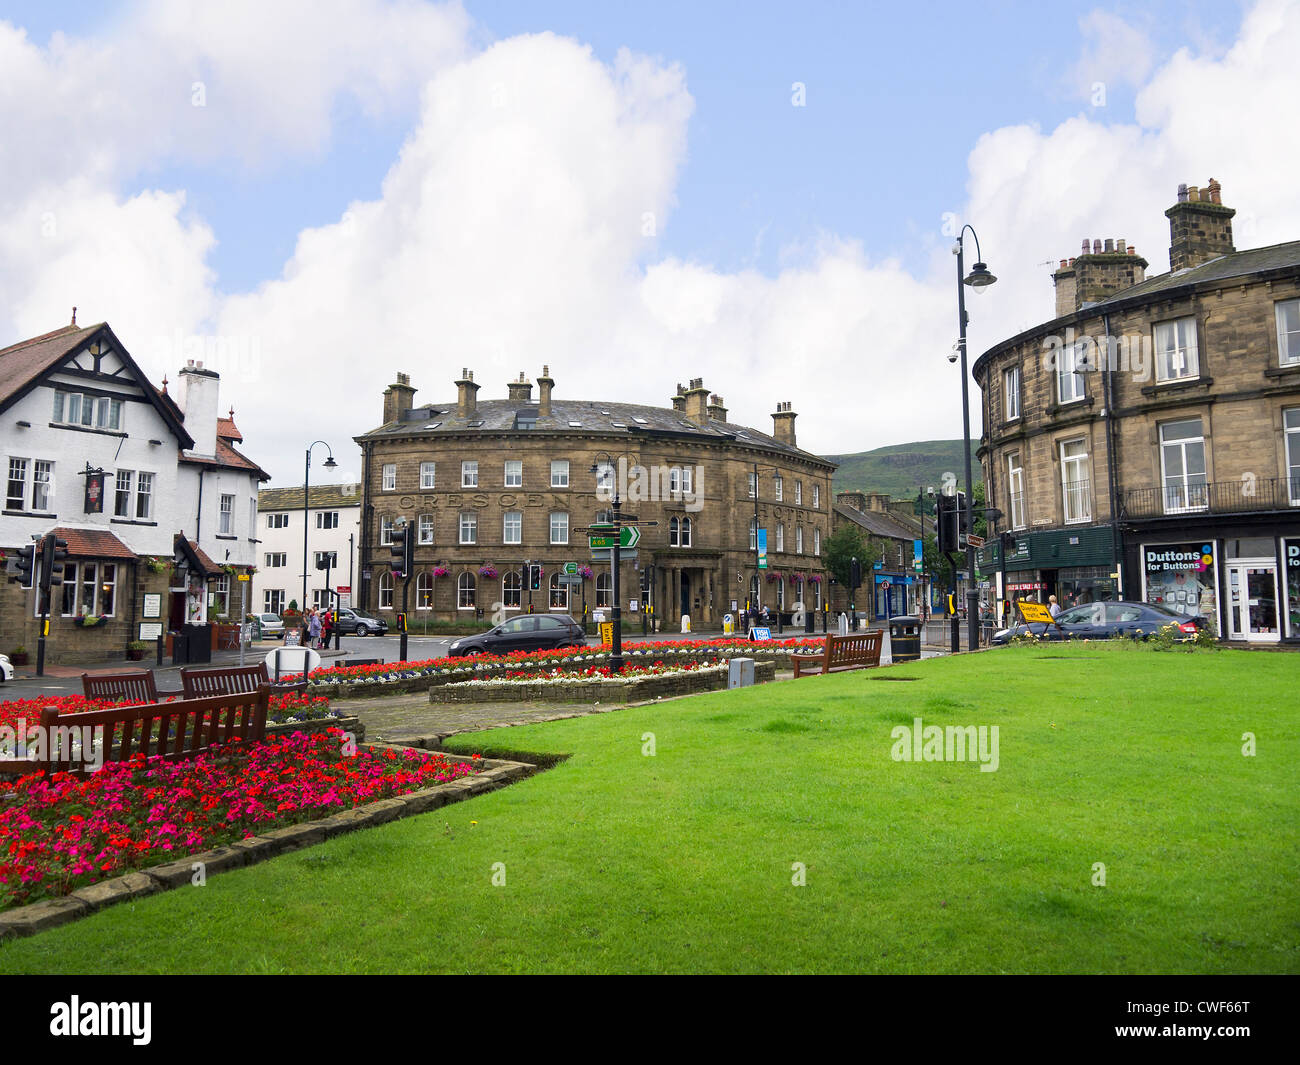 the town centre in ilkley in west yorkshire england stock photo